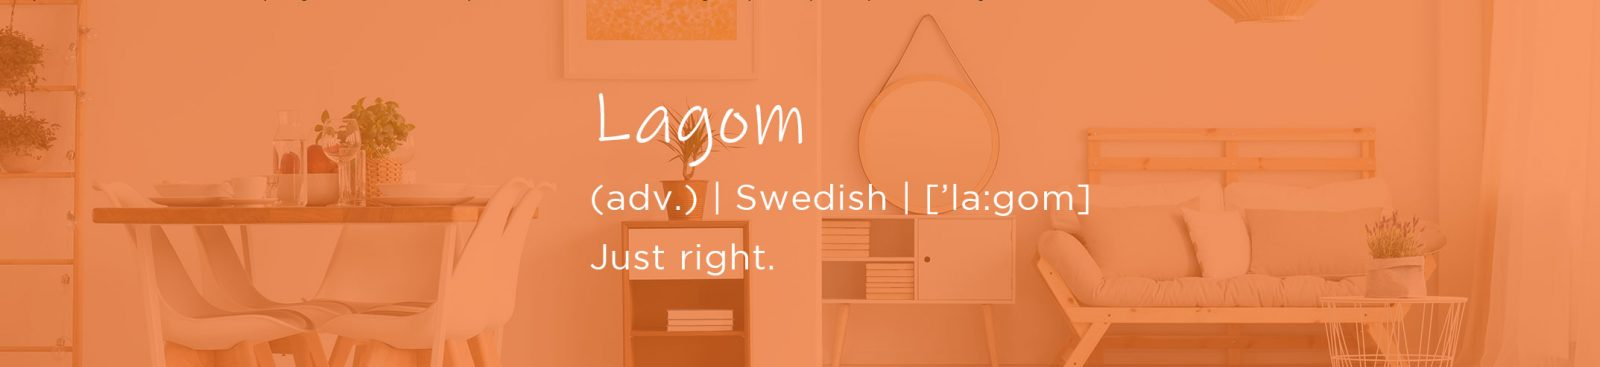 Interior design trend spot: What is Lagom? image